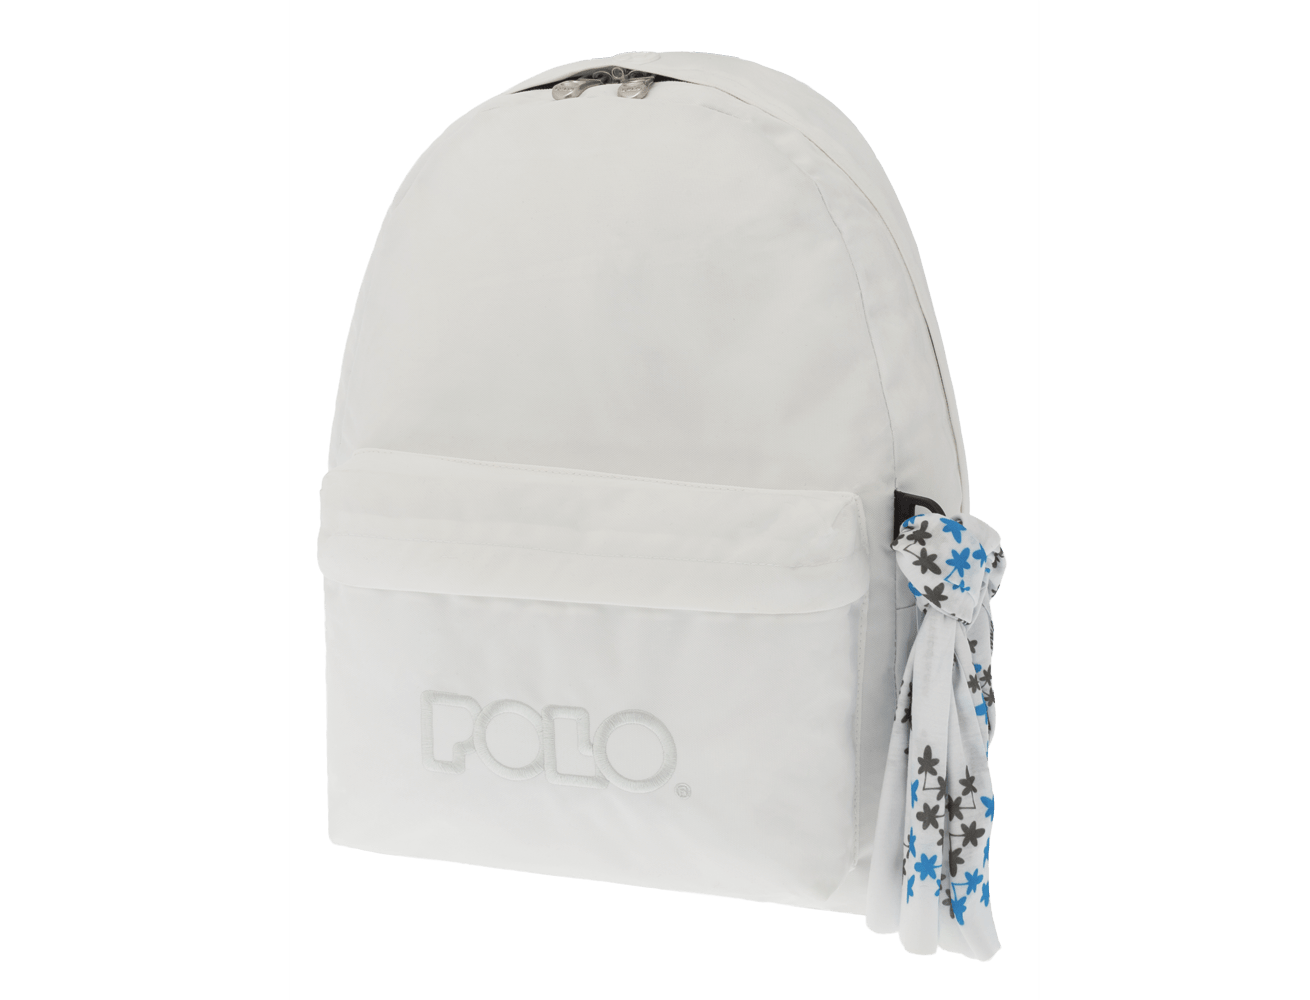 2caf426c20 Σχολική τσάντα Polo Original Backpack 9-01-135-41 - Lexicon Shop